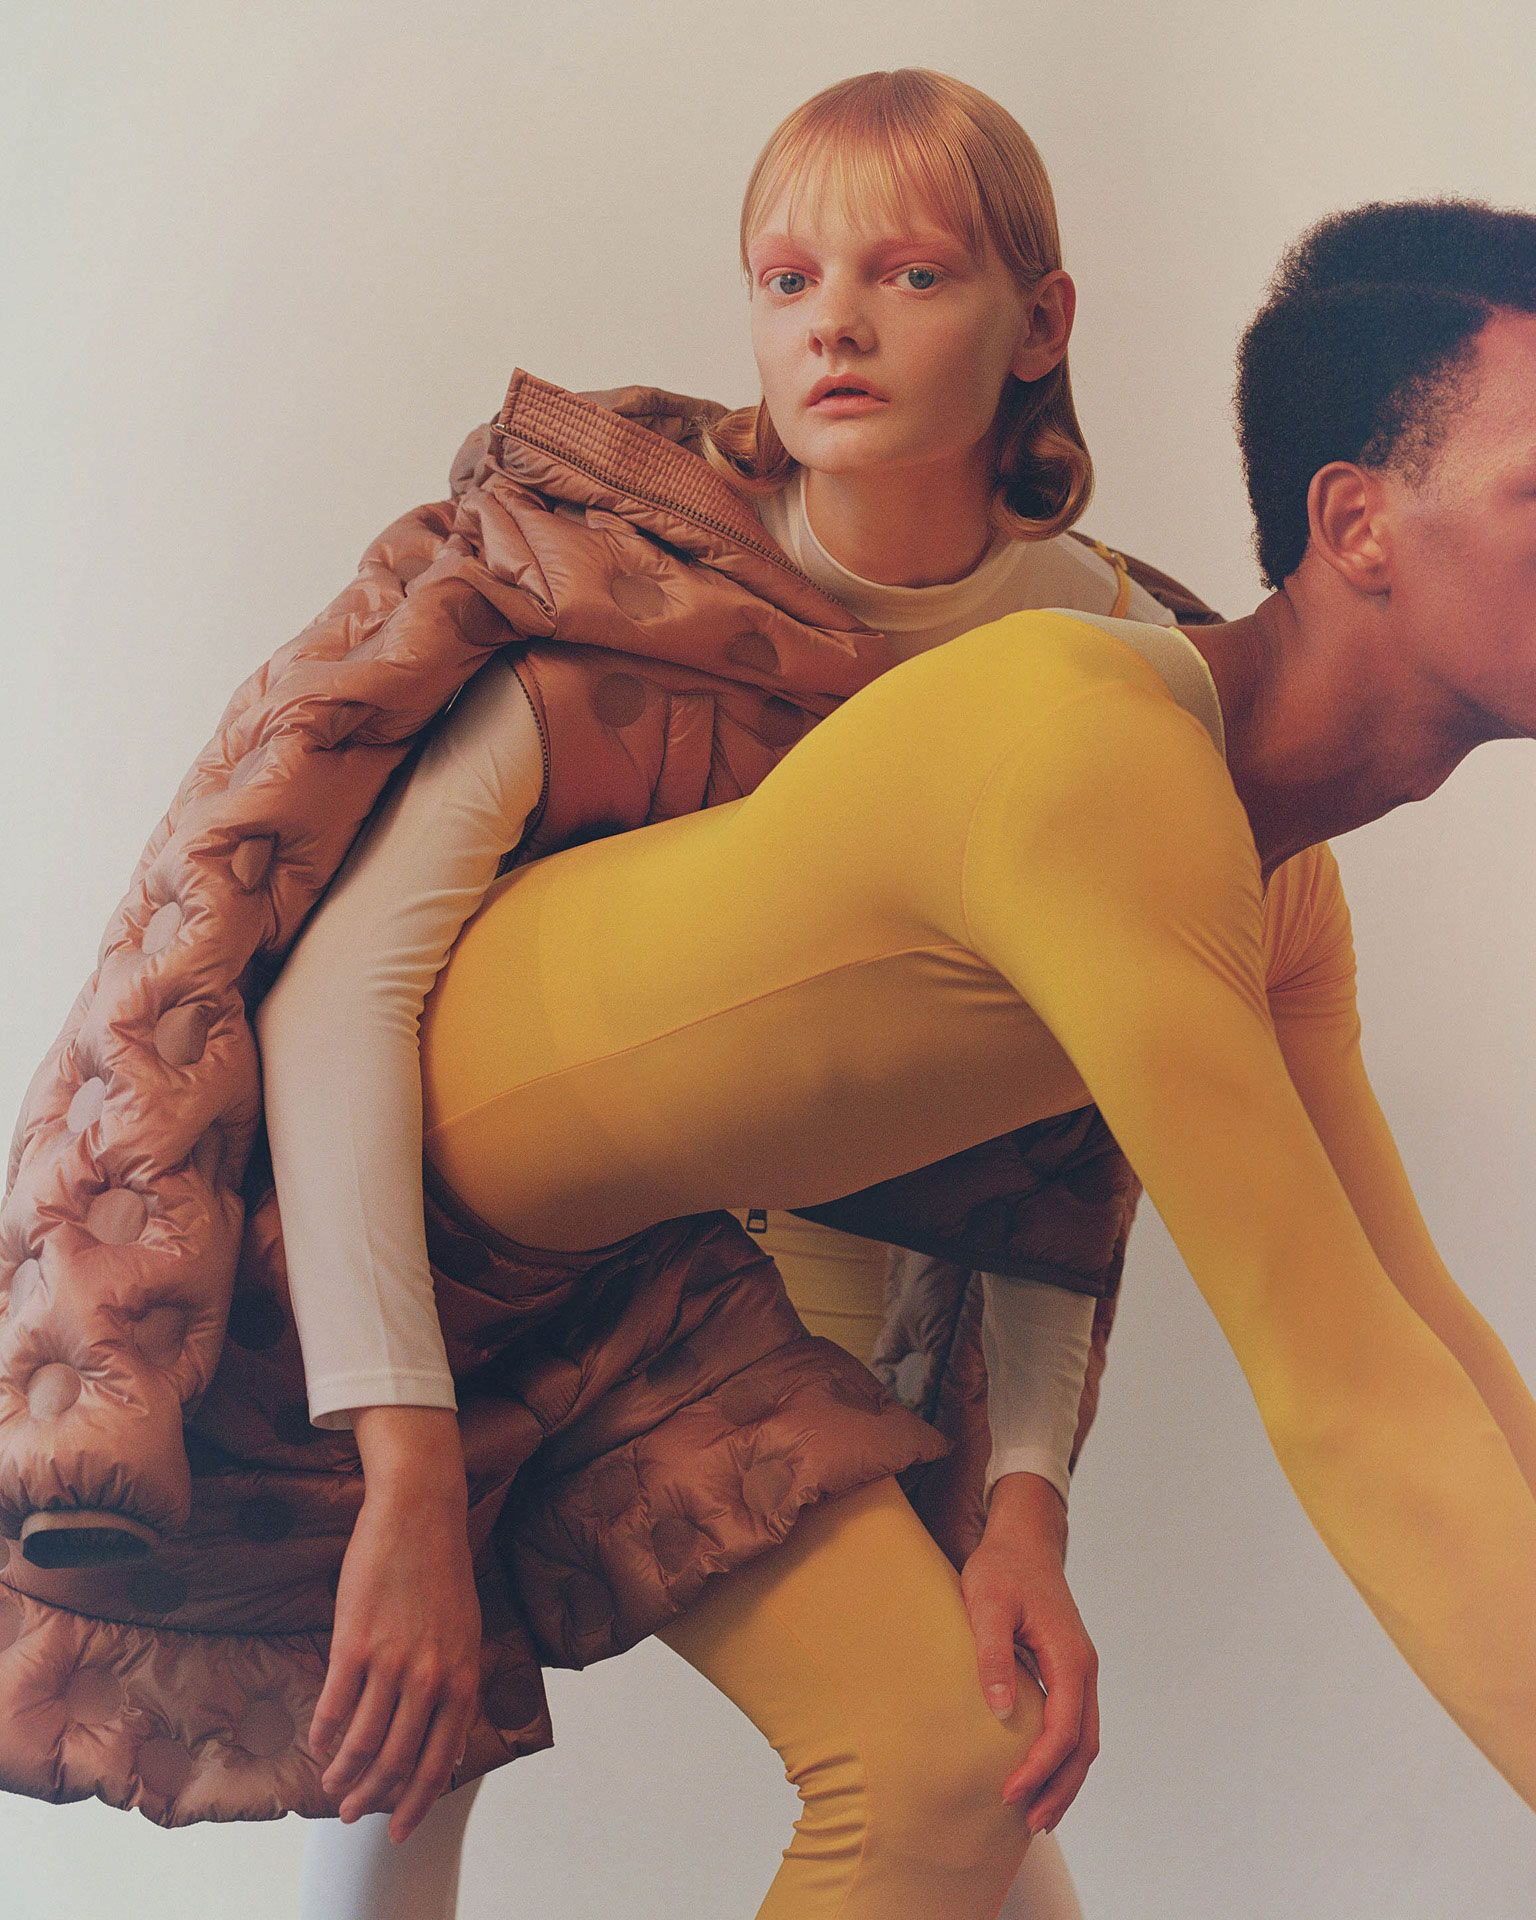 redhead female model wearing white bodysuit and black male model wearing yellow bodysuit both wearing the same brown puffy coat photographed by Oumayma B Tanfous for Moncler as a story for Document Journal magazine